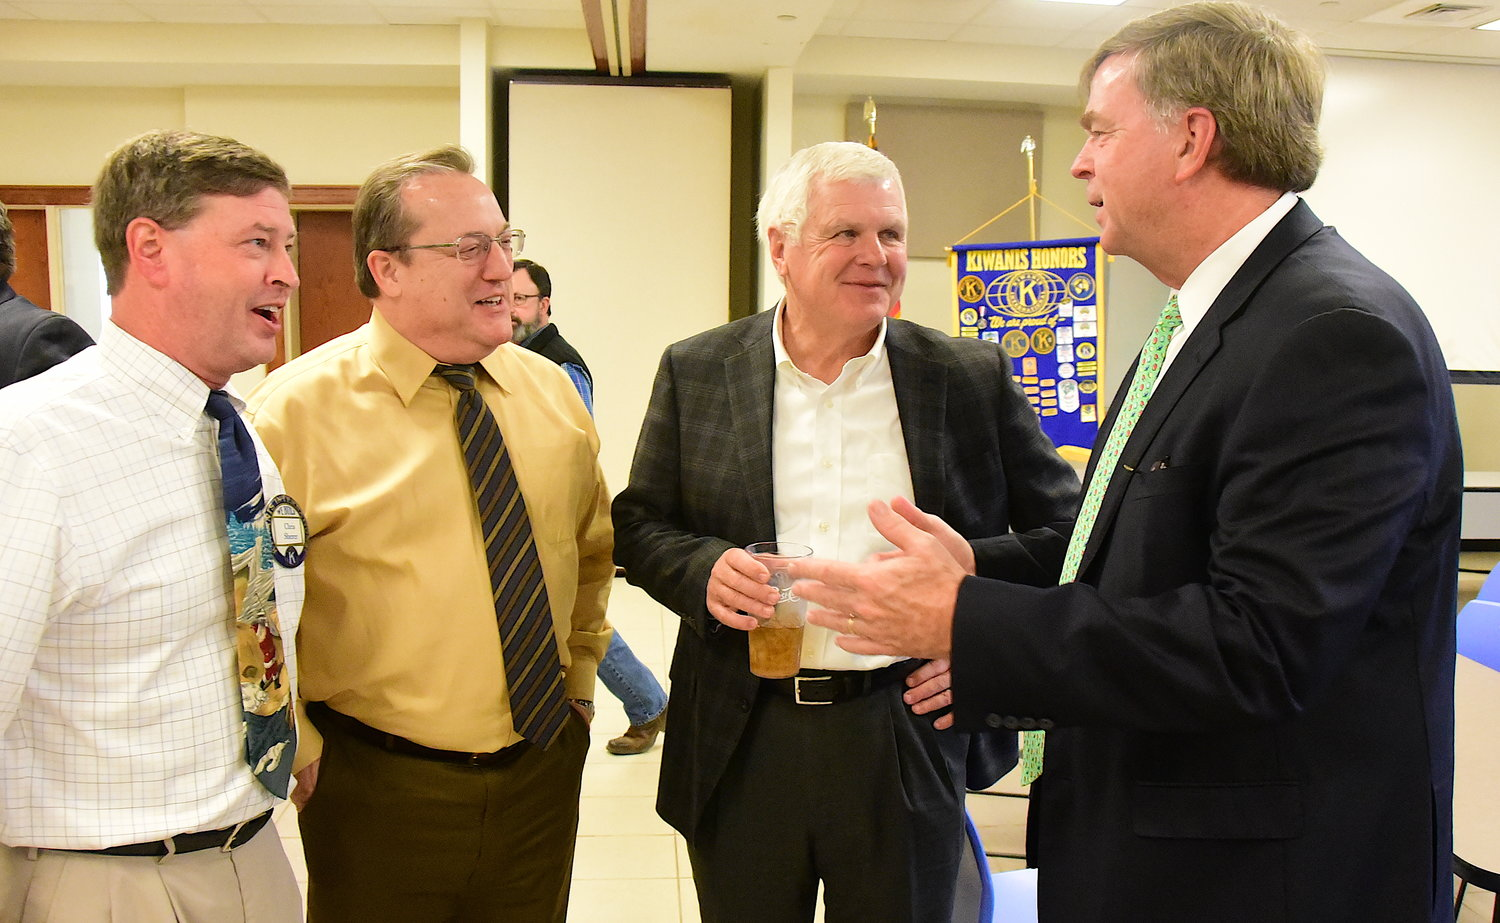 Huntsville Mayor Tommy Battle, at right, talks with Judge Chris Sherer, attorney Sam Bentley and Jasper Mayor David O'Mary following Monday's Kiwanis Club of Jasper meeting.